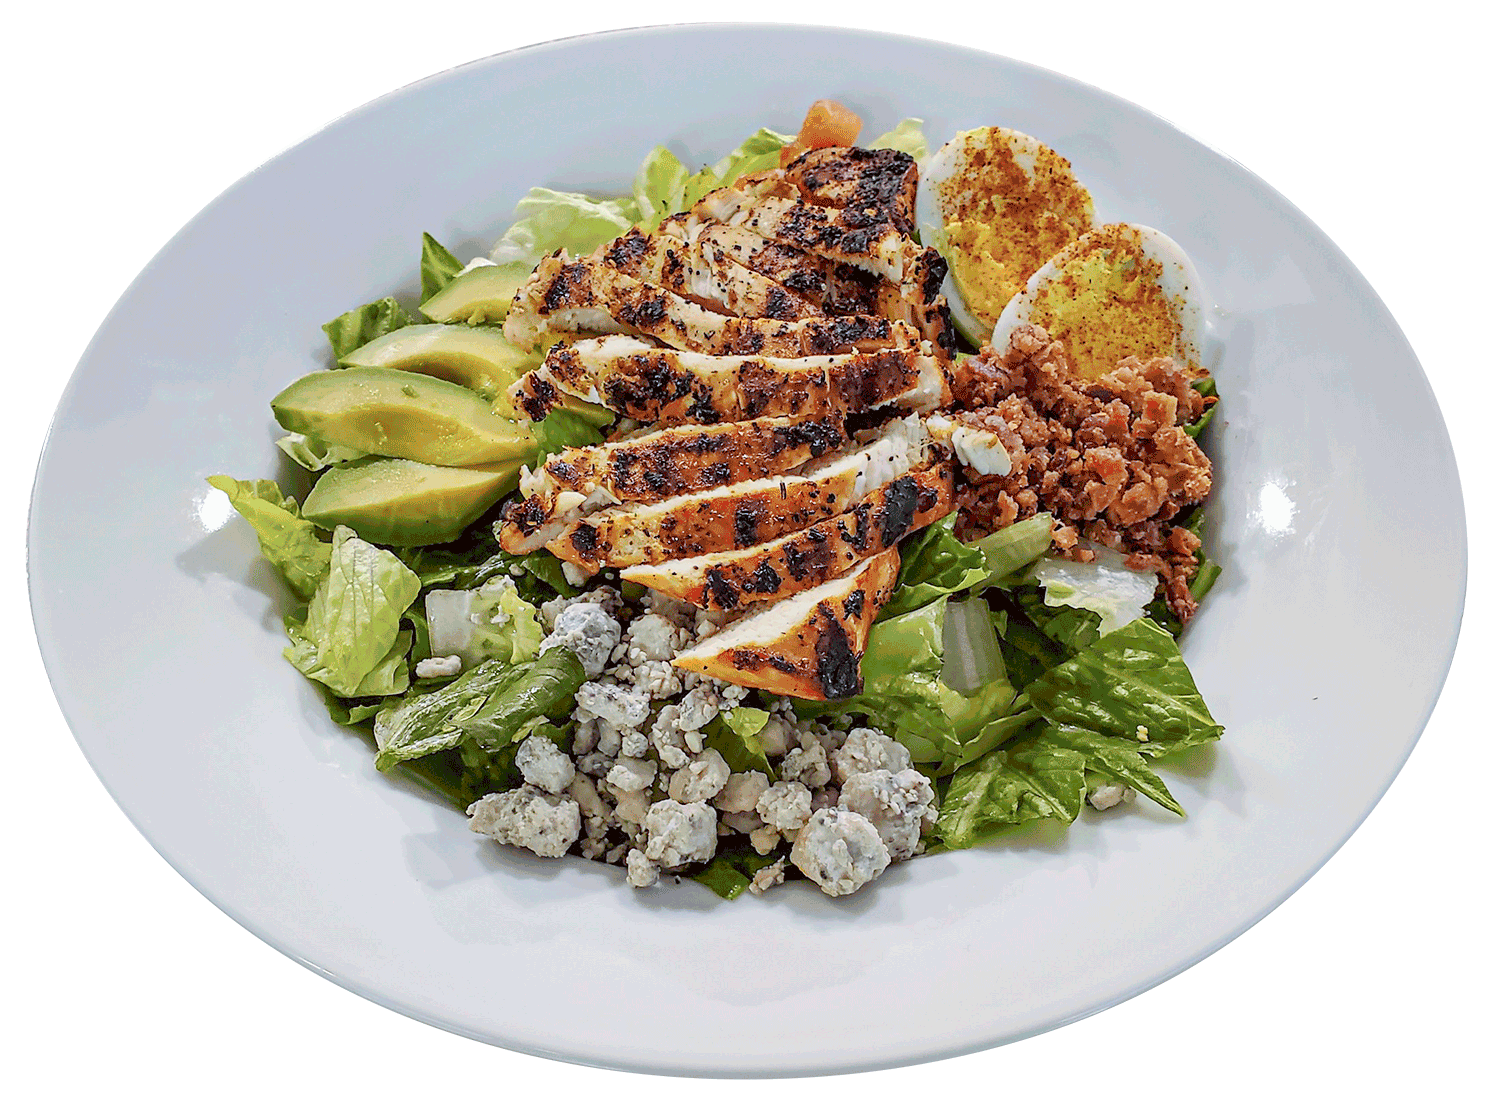 Chicken Salad with Avocados on a white plate